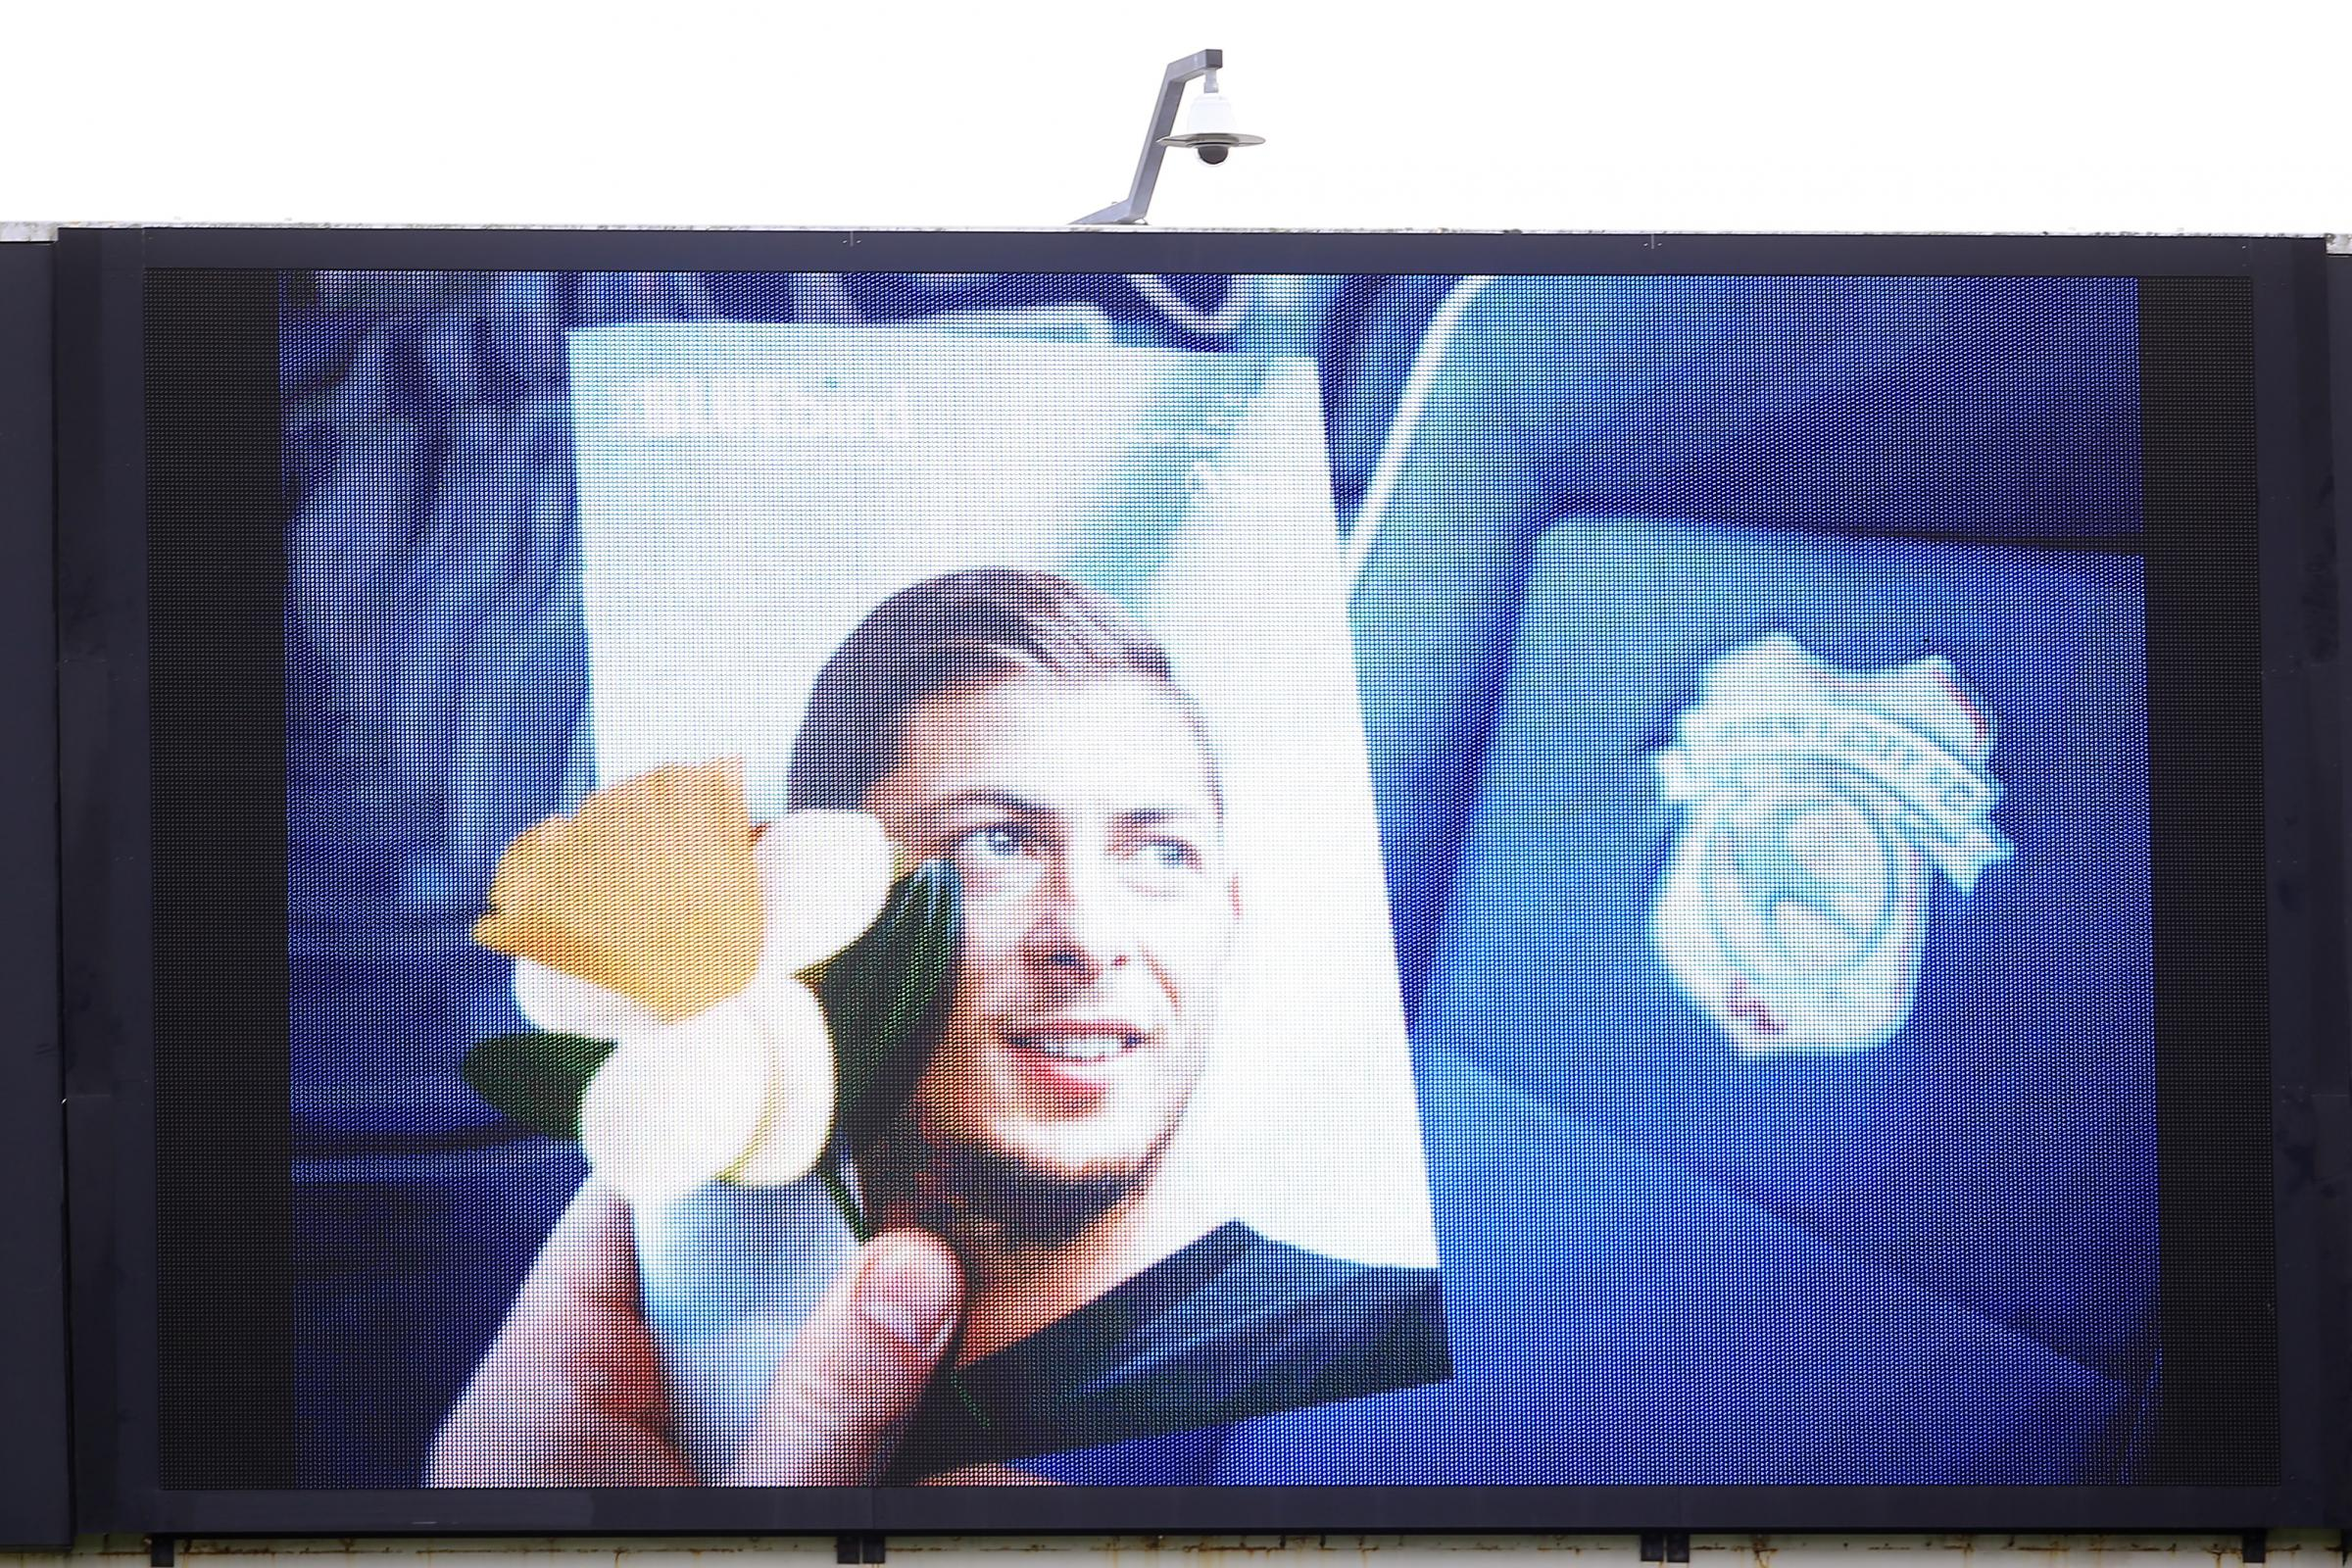 Funds are being raised to continue the search for Emiliano Sala's missing pilot